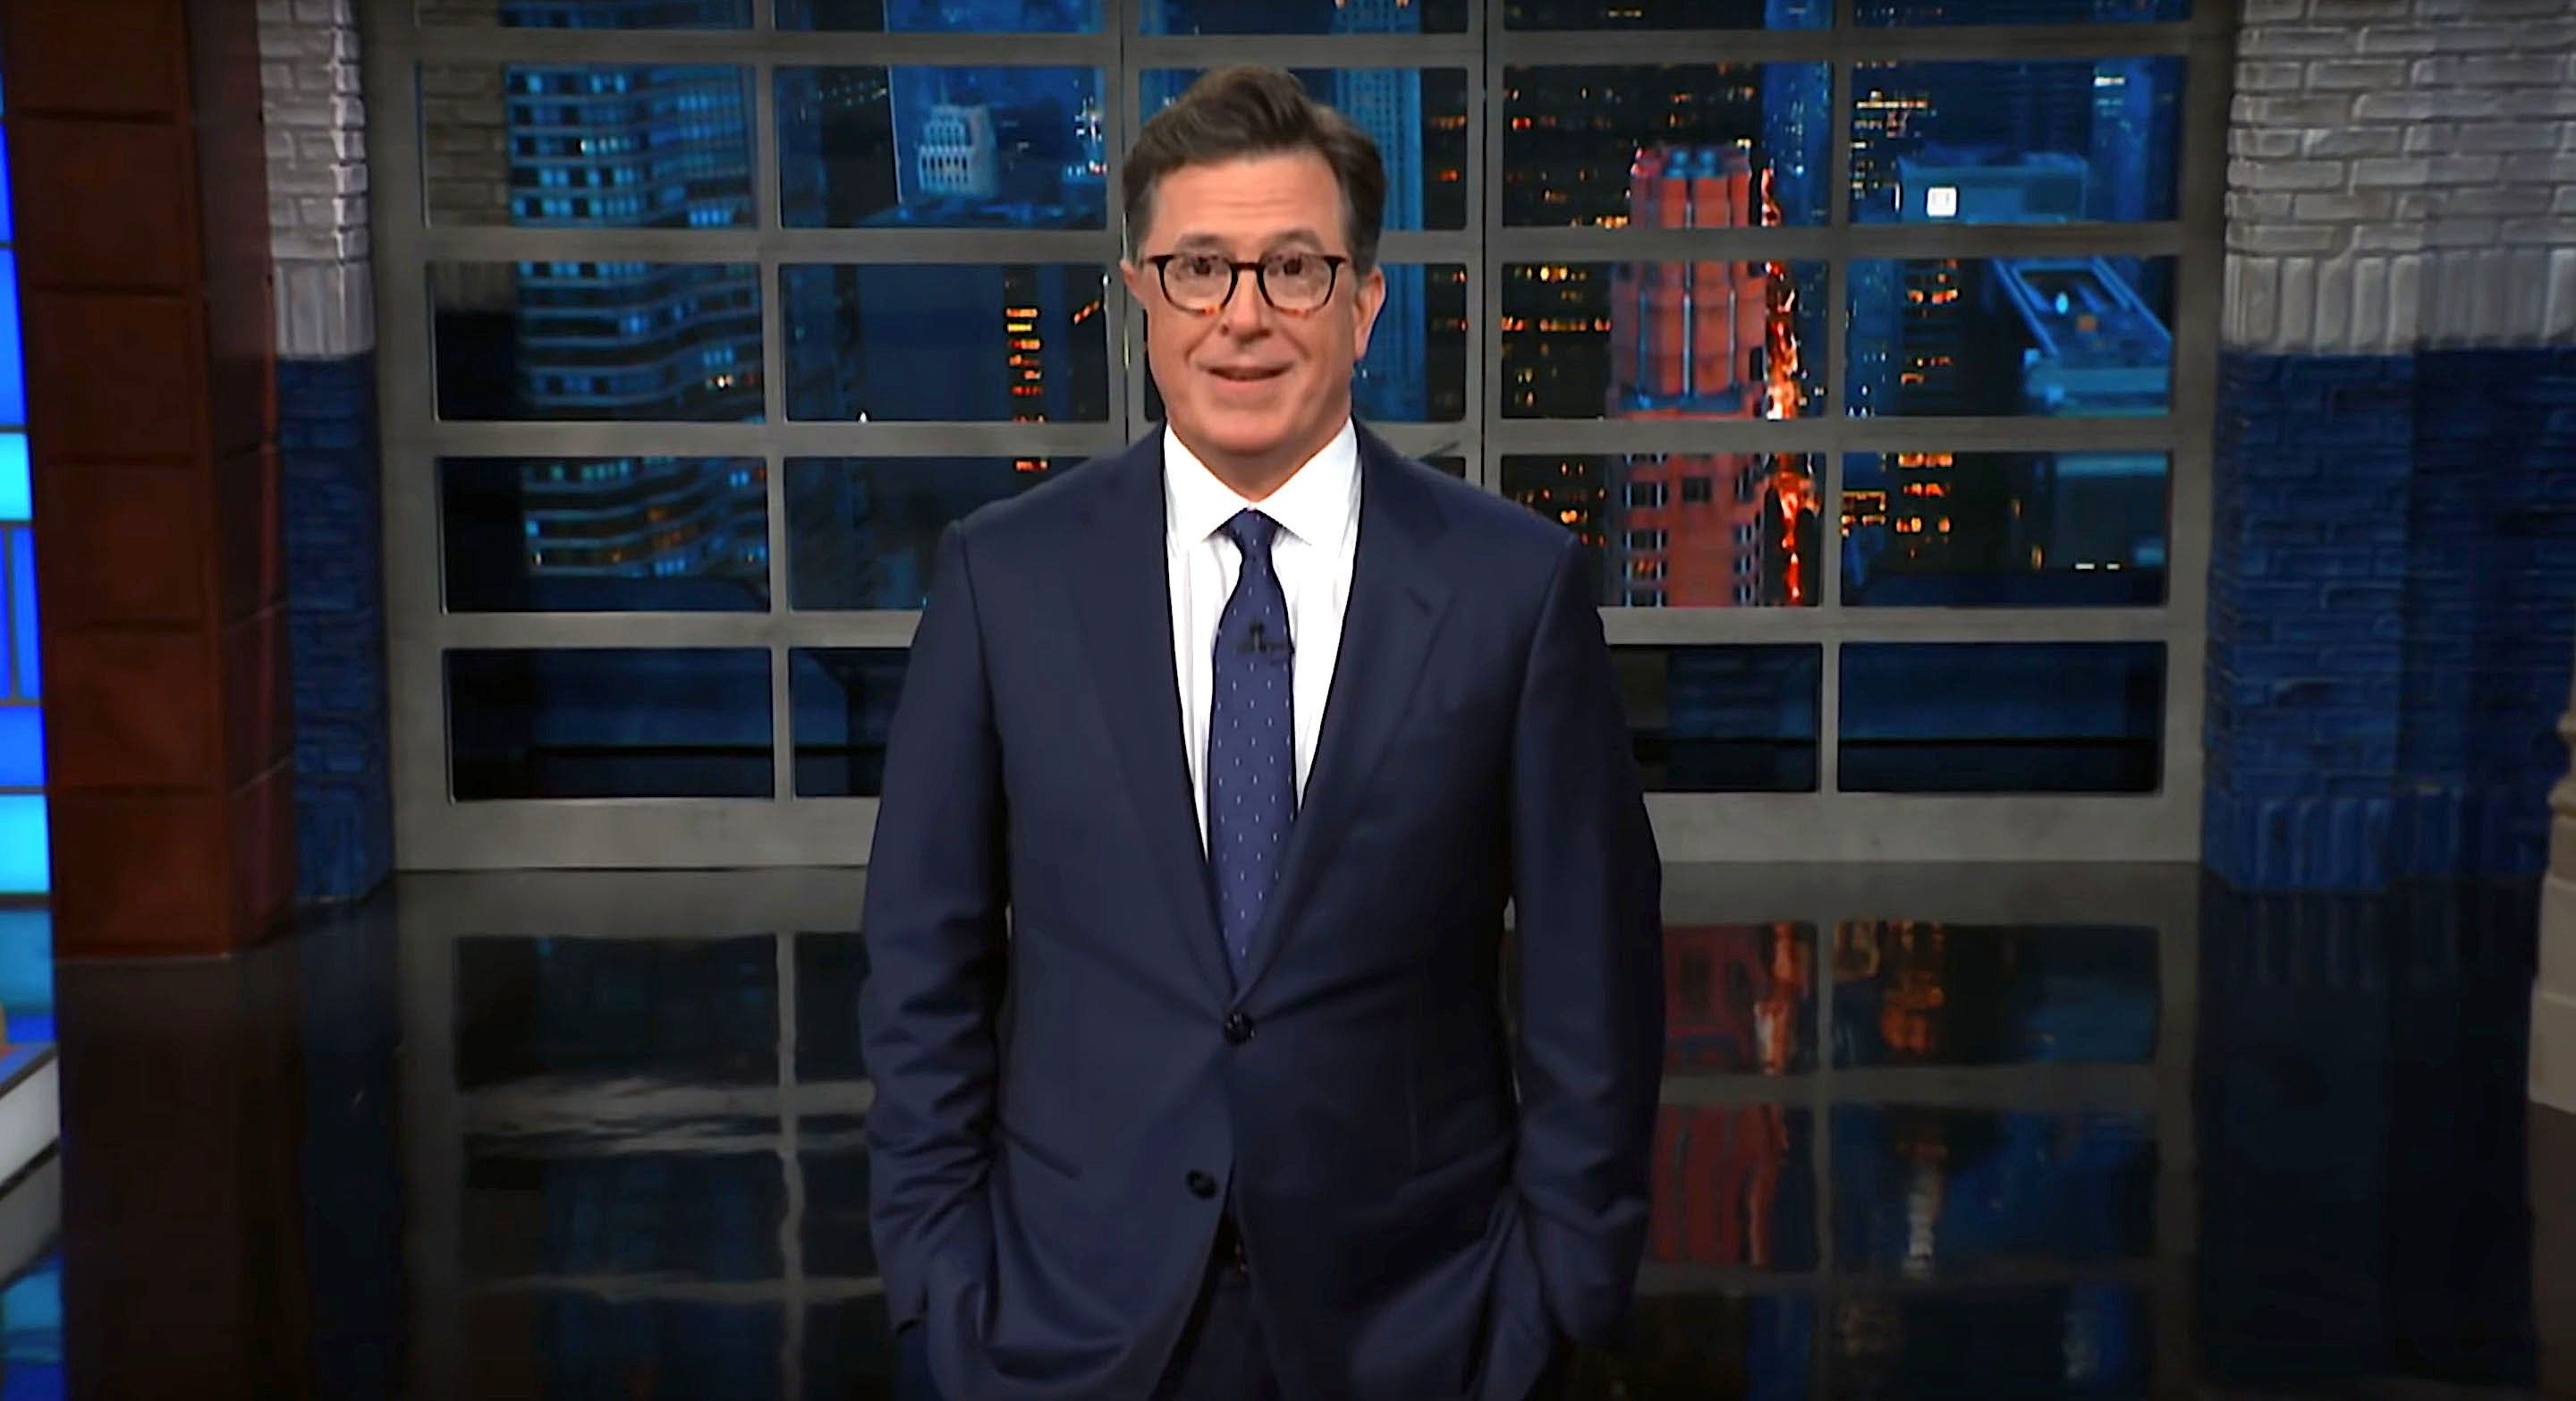 Stephen Colbert of The Late Show talks about President Donald Trumps emergency spin mode